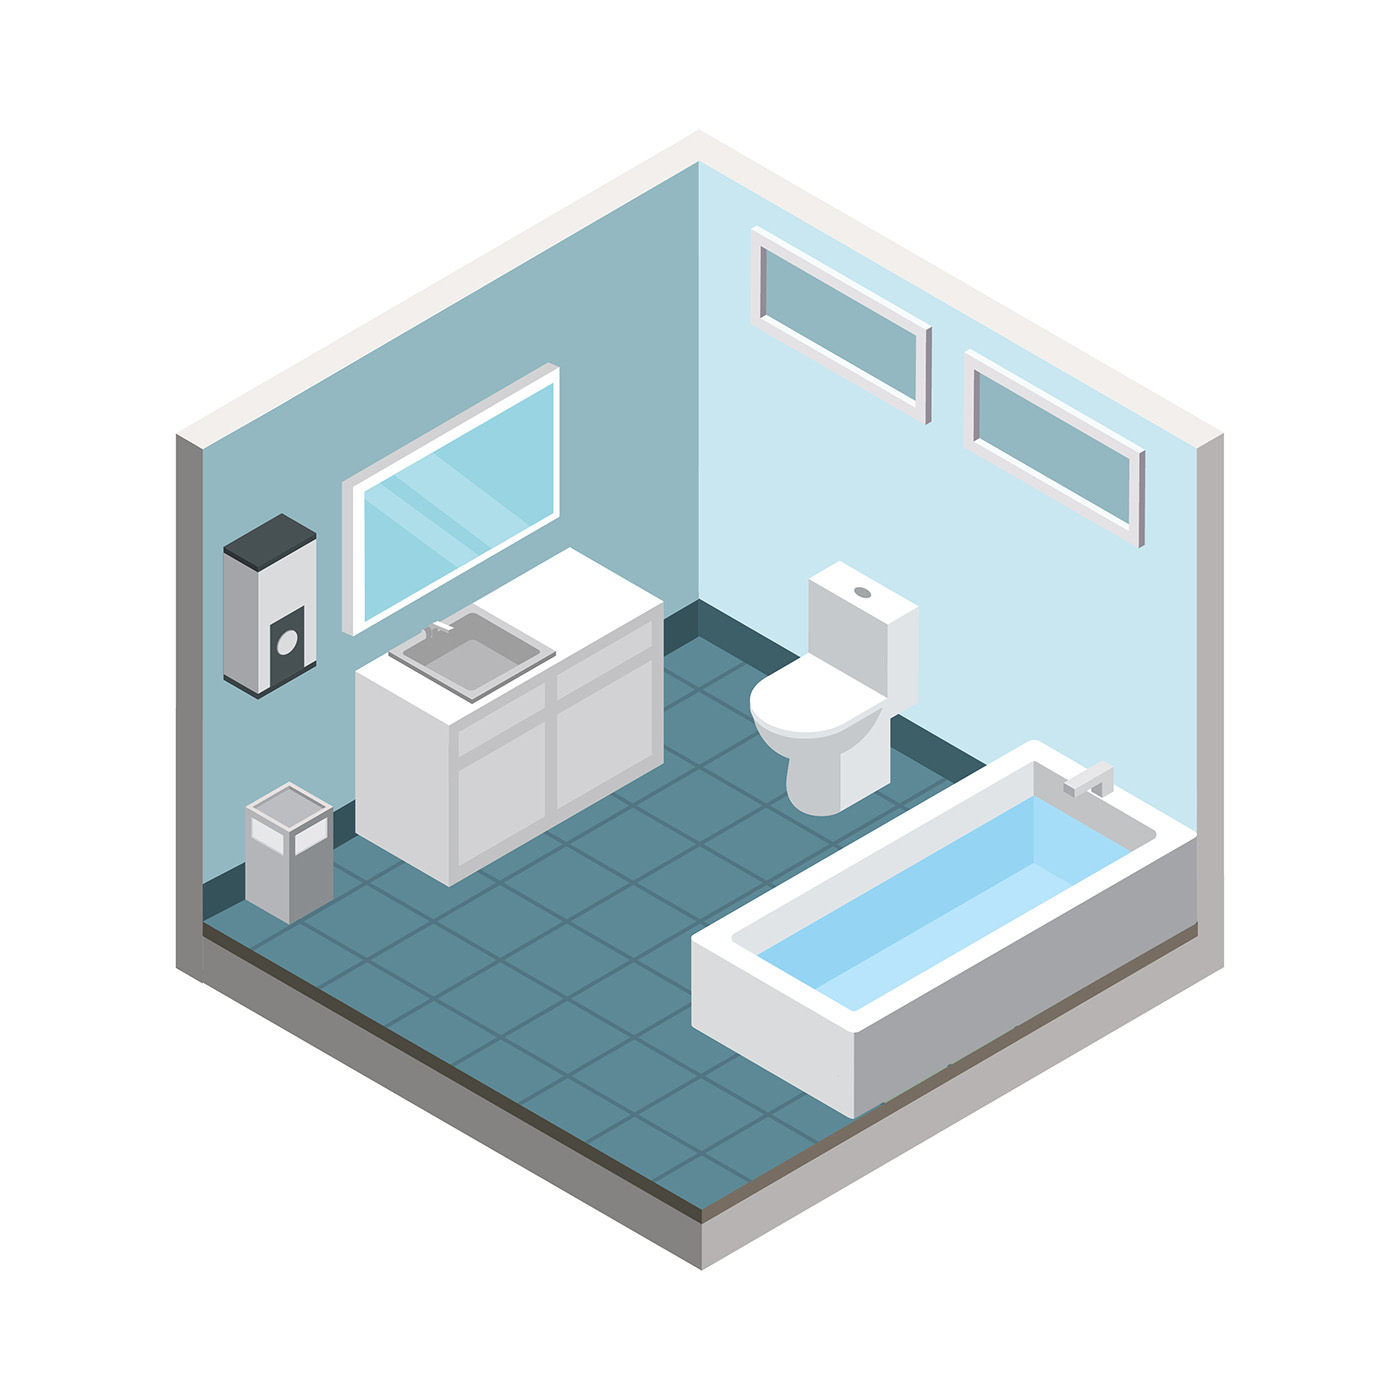 Bathroom isometric free vector download free vector art for 3d bathroom drawing